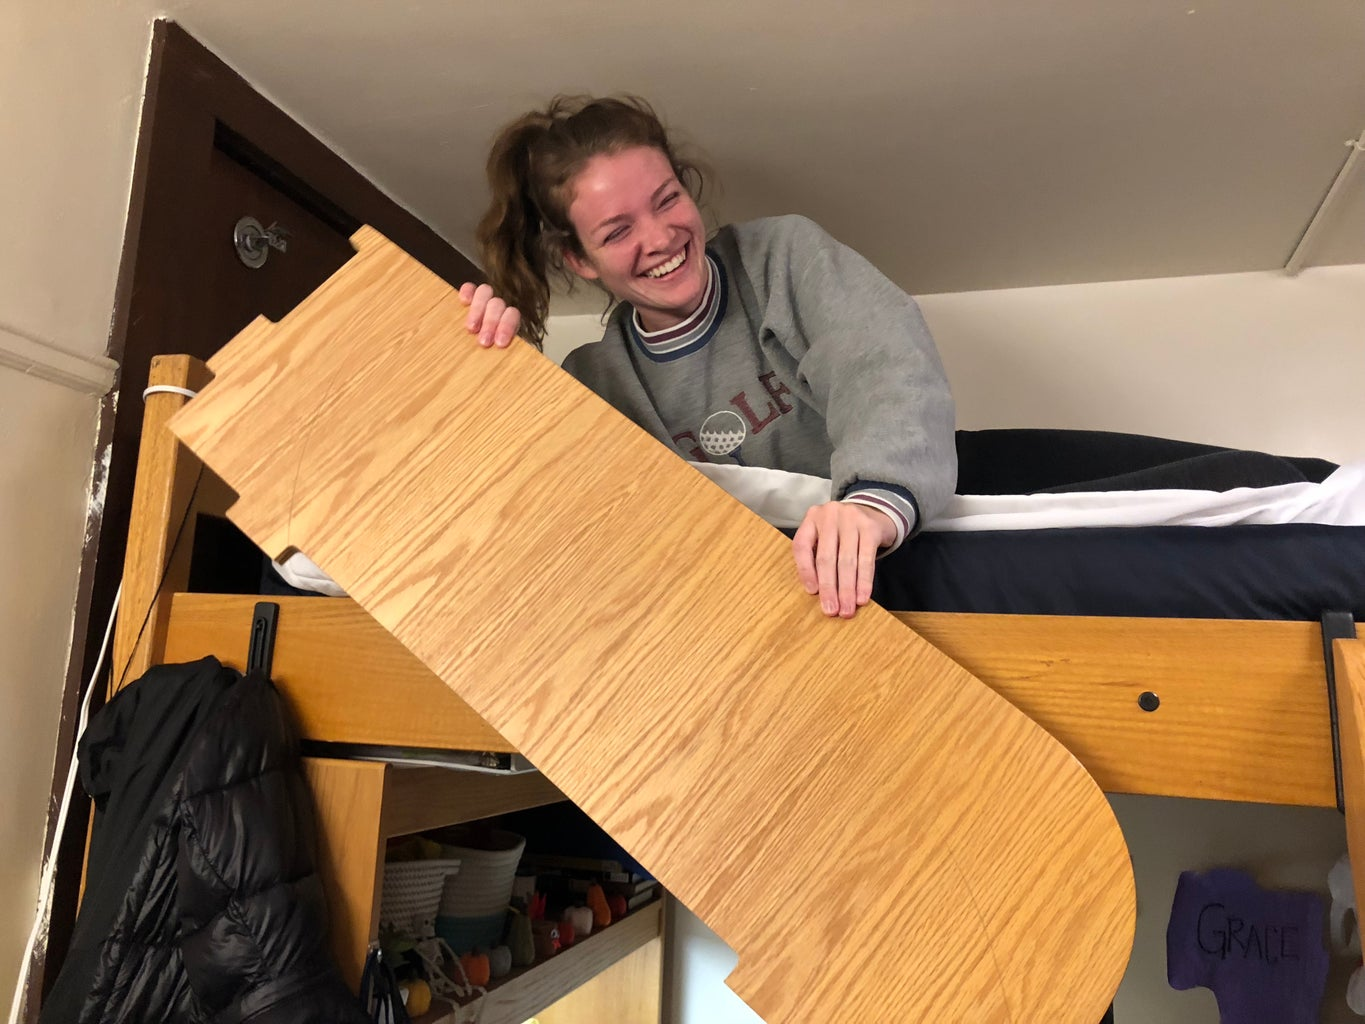 Prepare Lofted Bed for Making